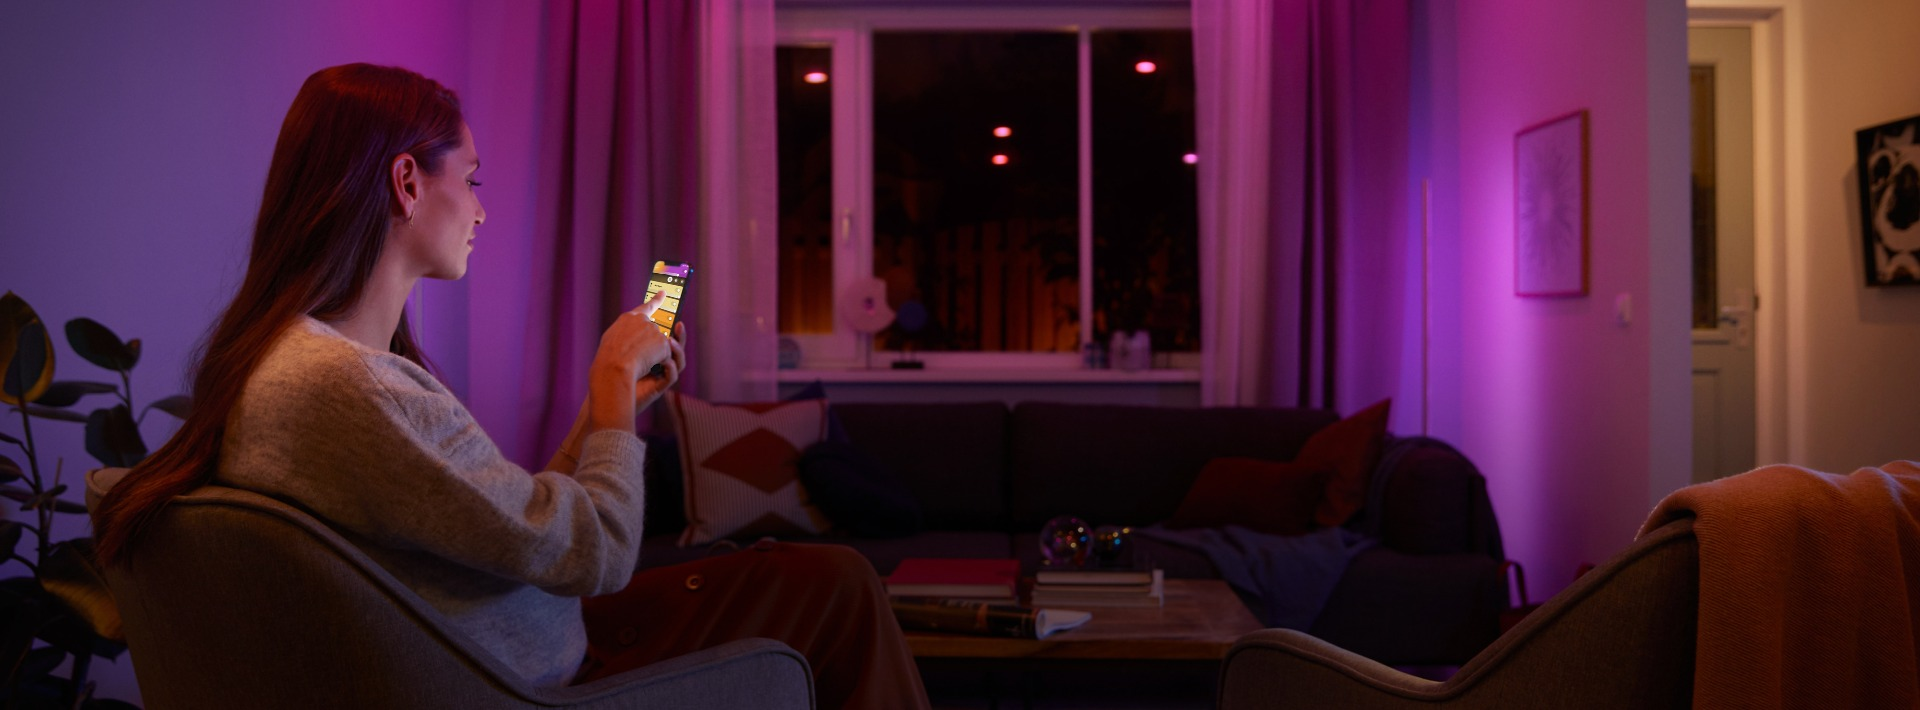 NEU: Philips Hue mit Bluetooth